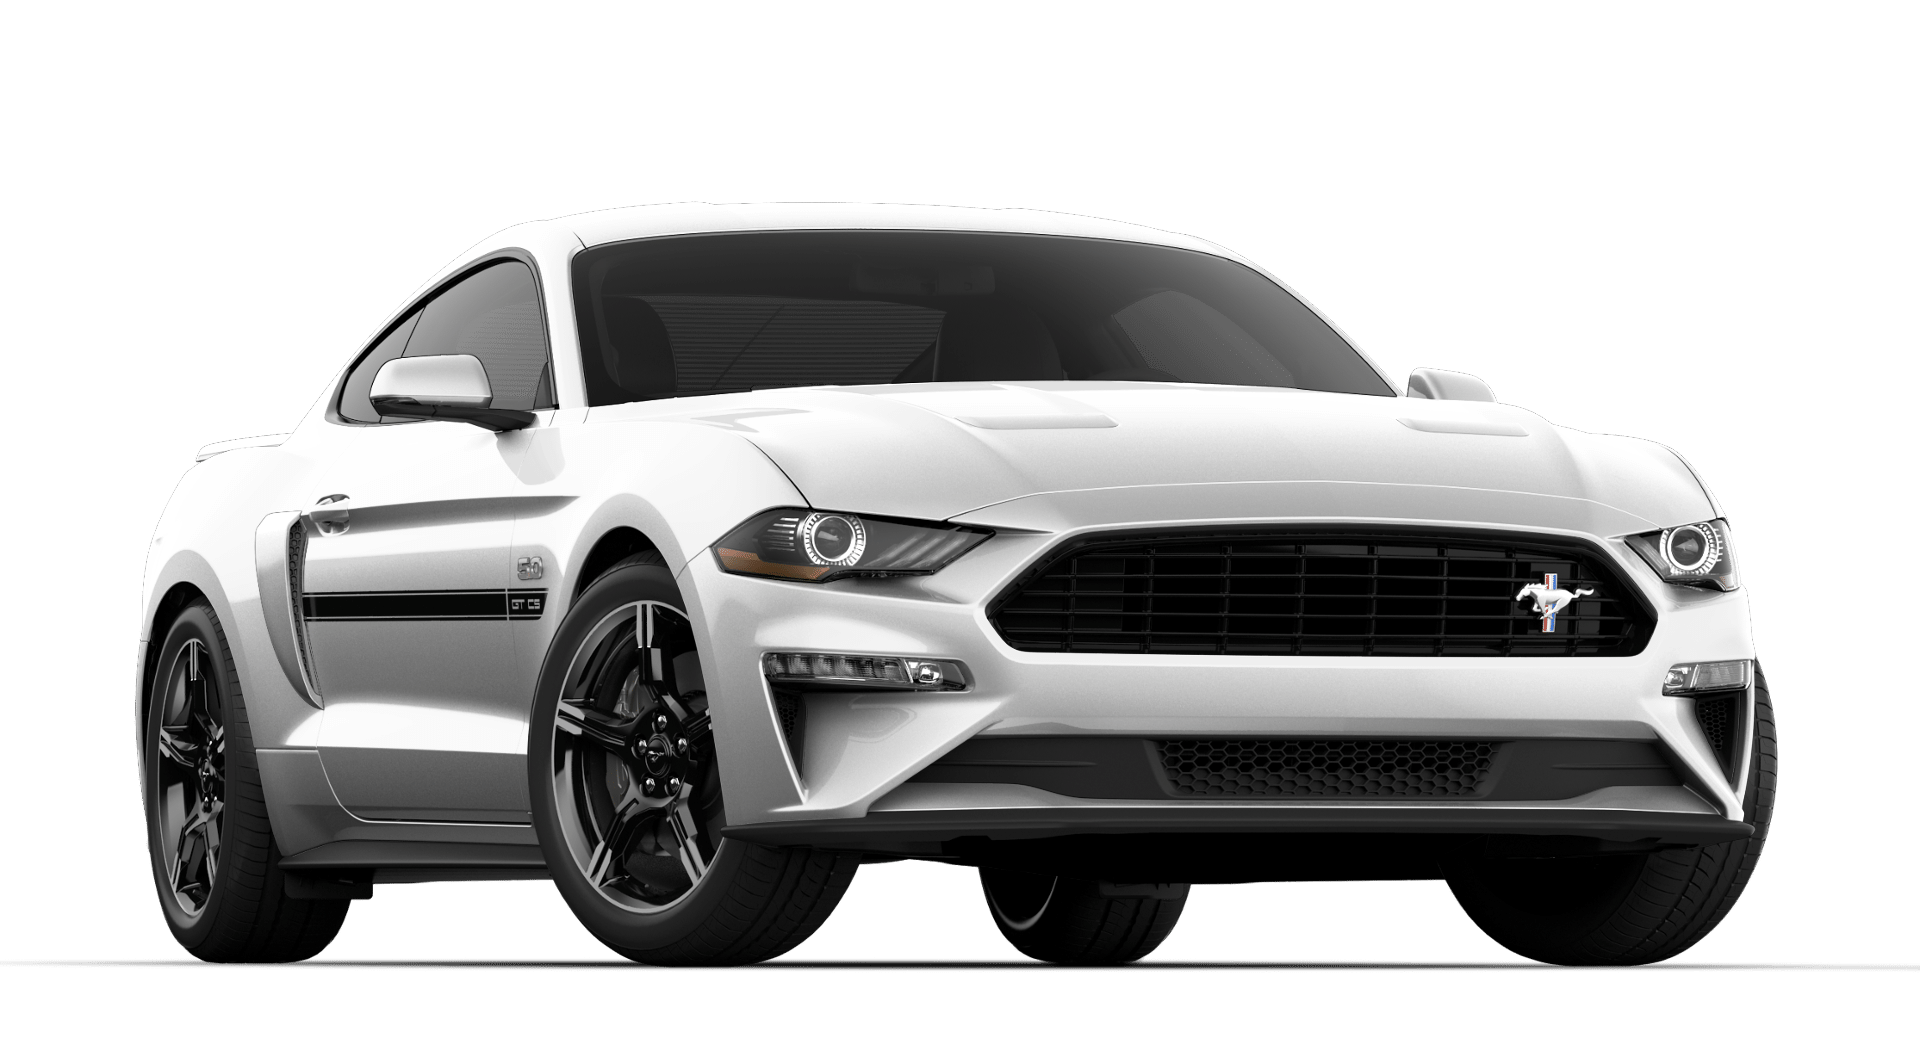 V8 GT PREMIUM 401A$48,414 - + OXFORD WHITE+ 10-SPEED AUTOMATIC TRANSMISSION+ CALIFORNIA SPECIAL PACKAGE+ QUAD TIP ACTIVE EXHAUST